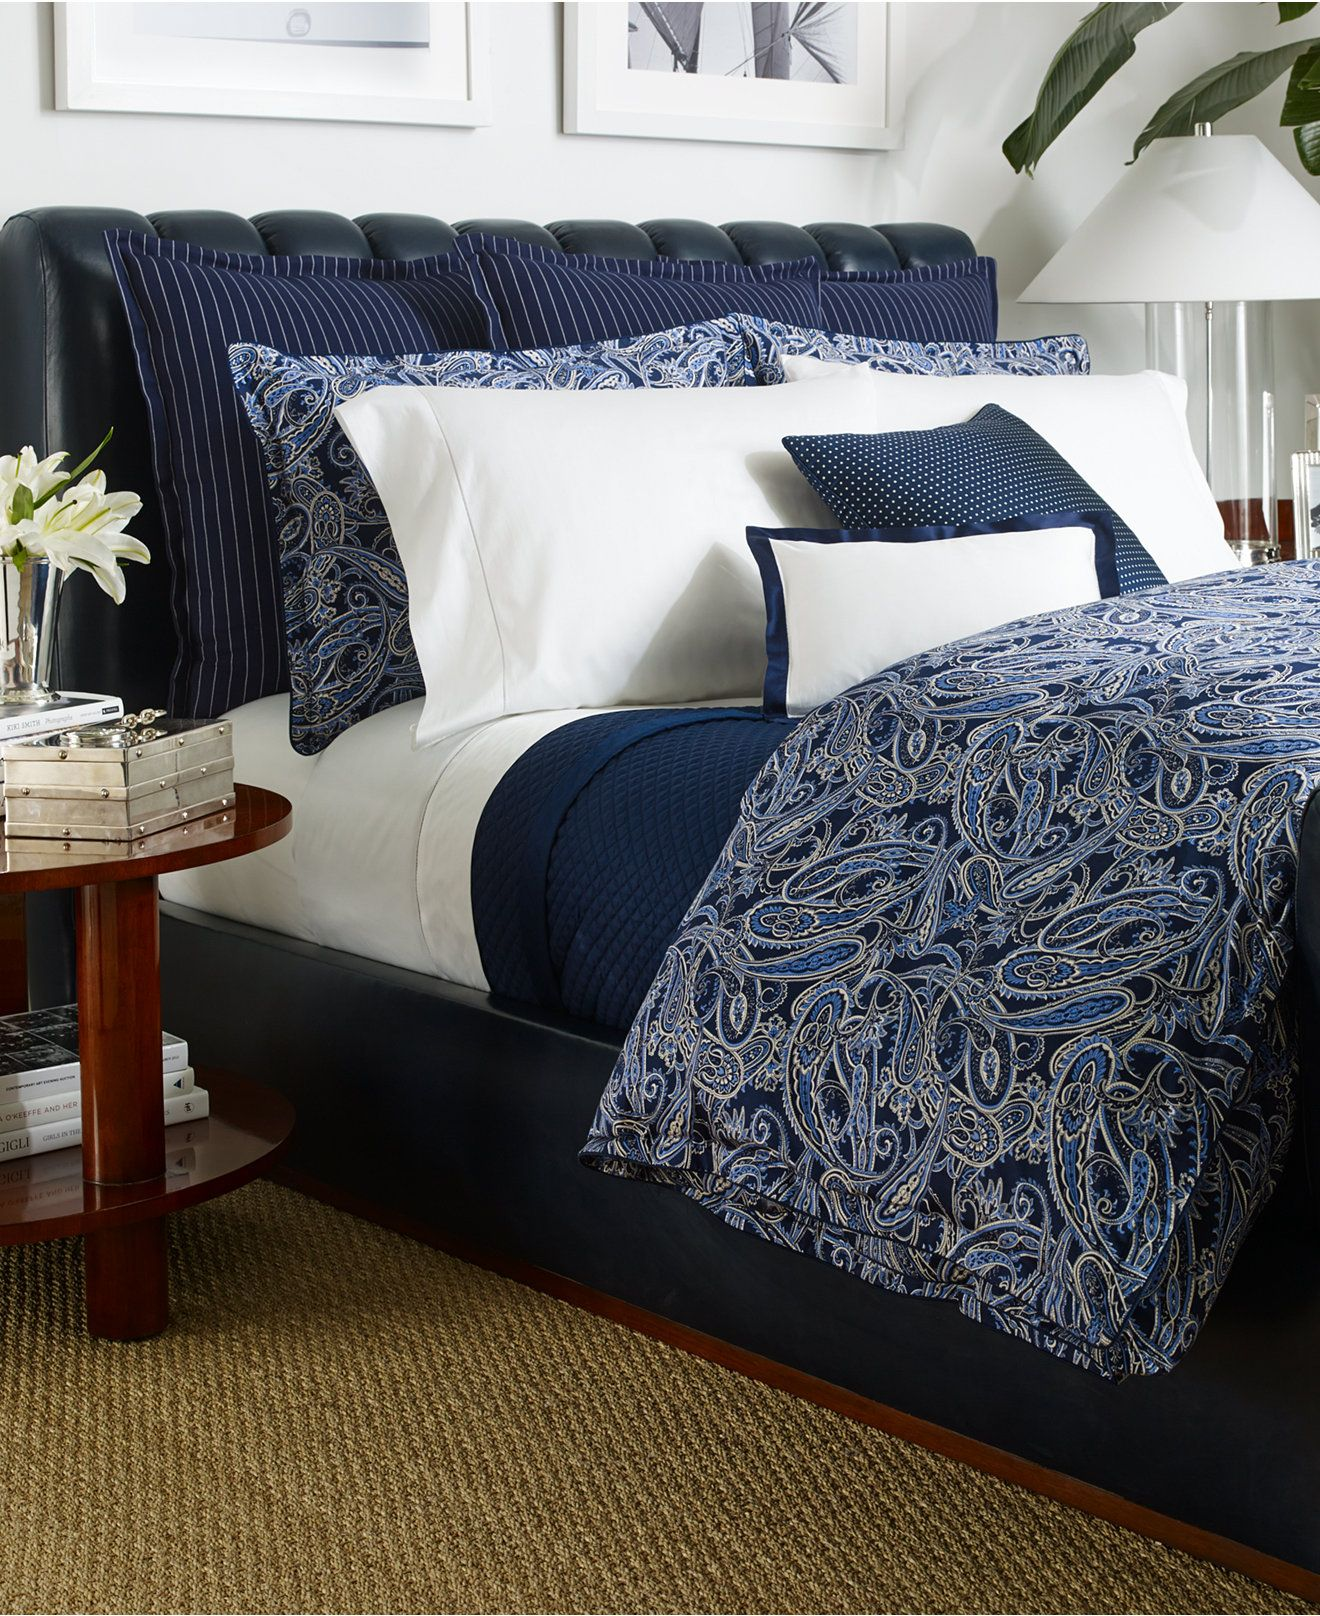 Ralph Lauren Costa Azzurra Collection Bedding